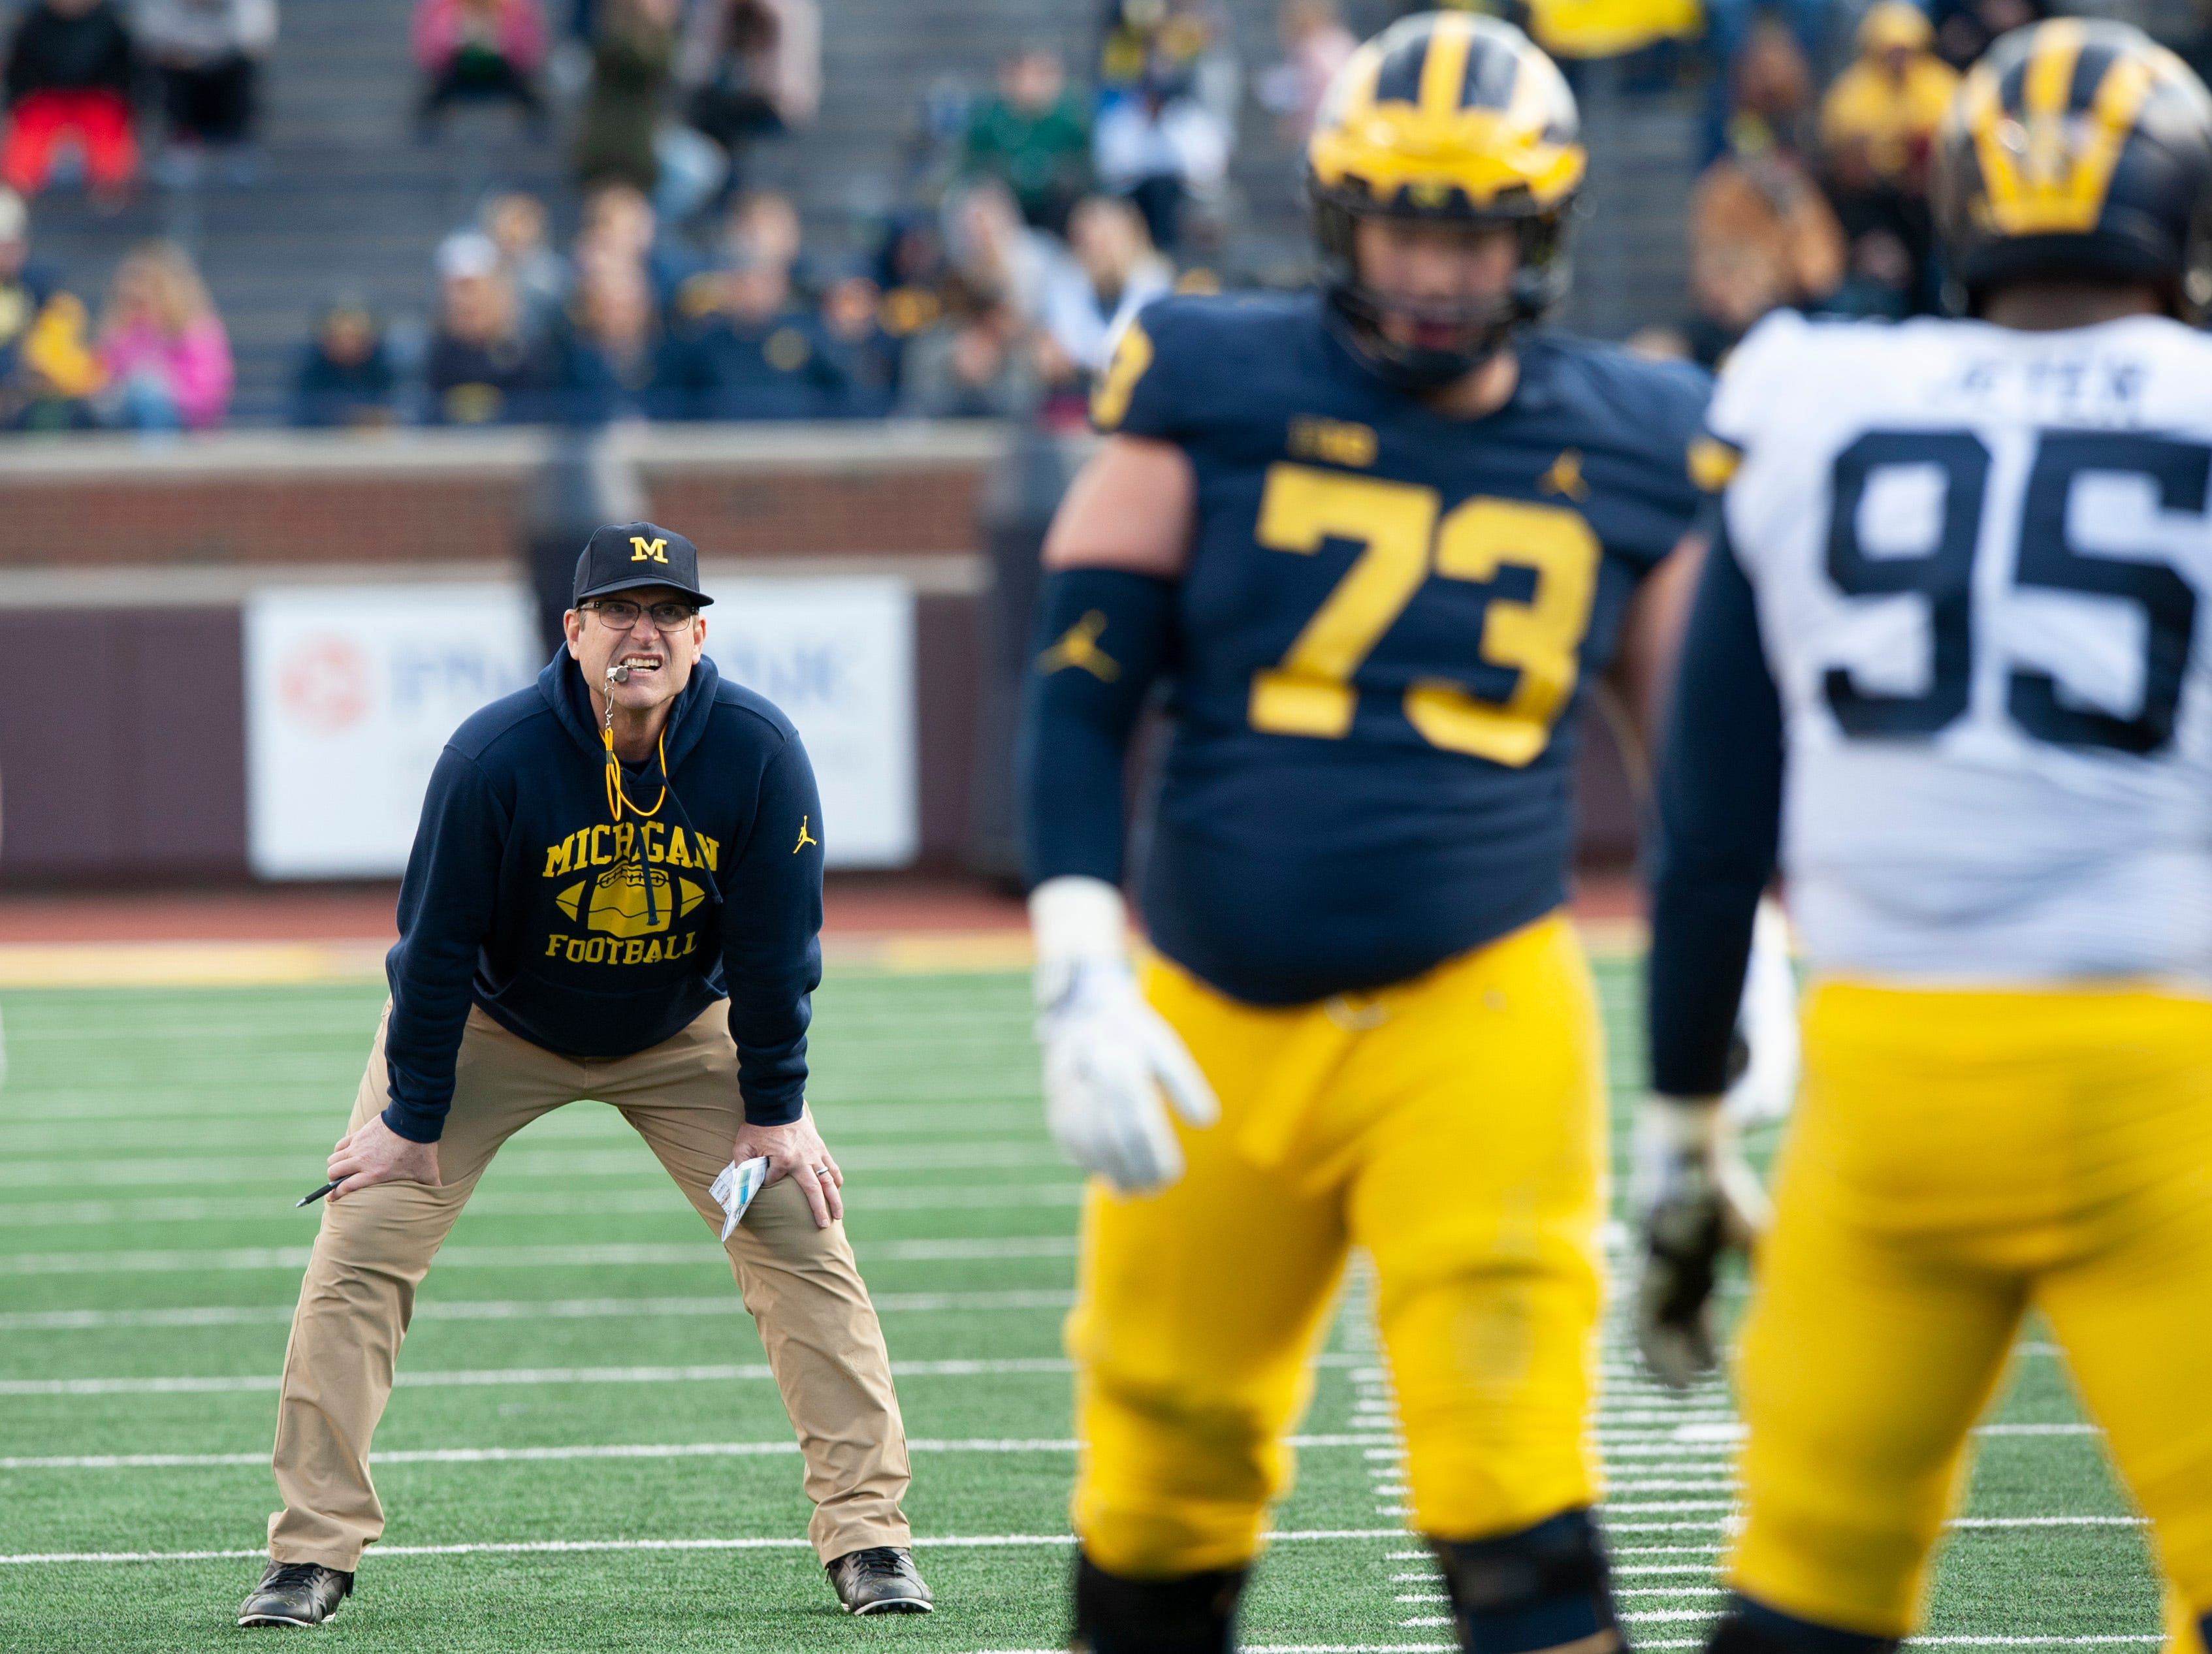 Michigan head coach Jim Harbaugh watches closely during the scrimmage.